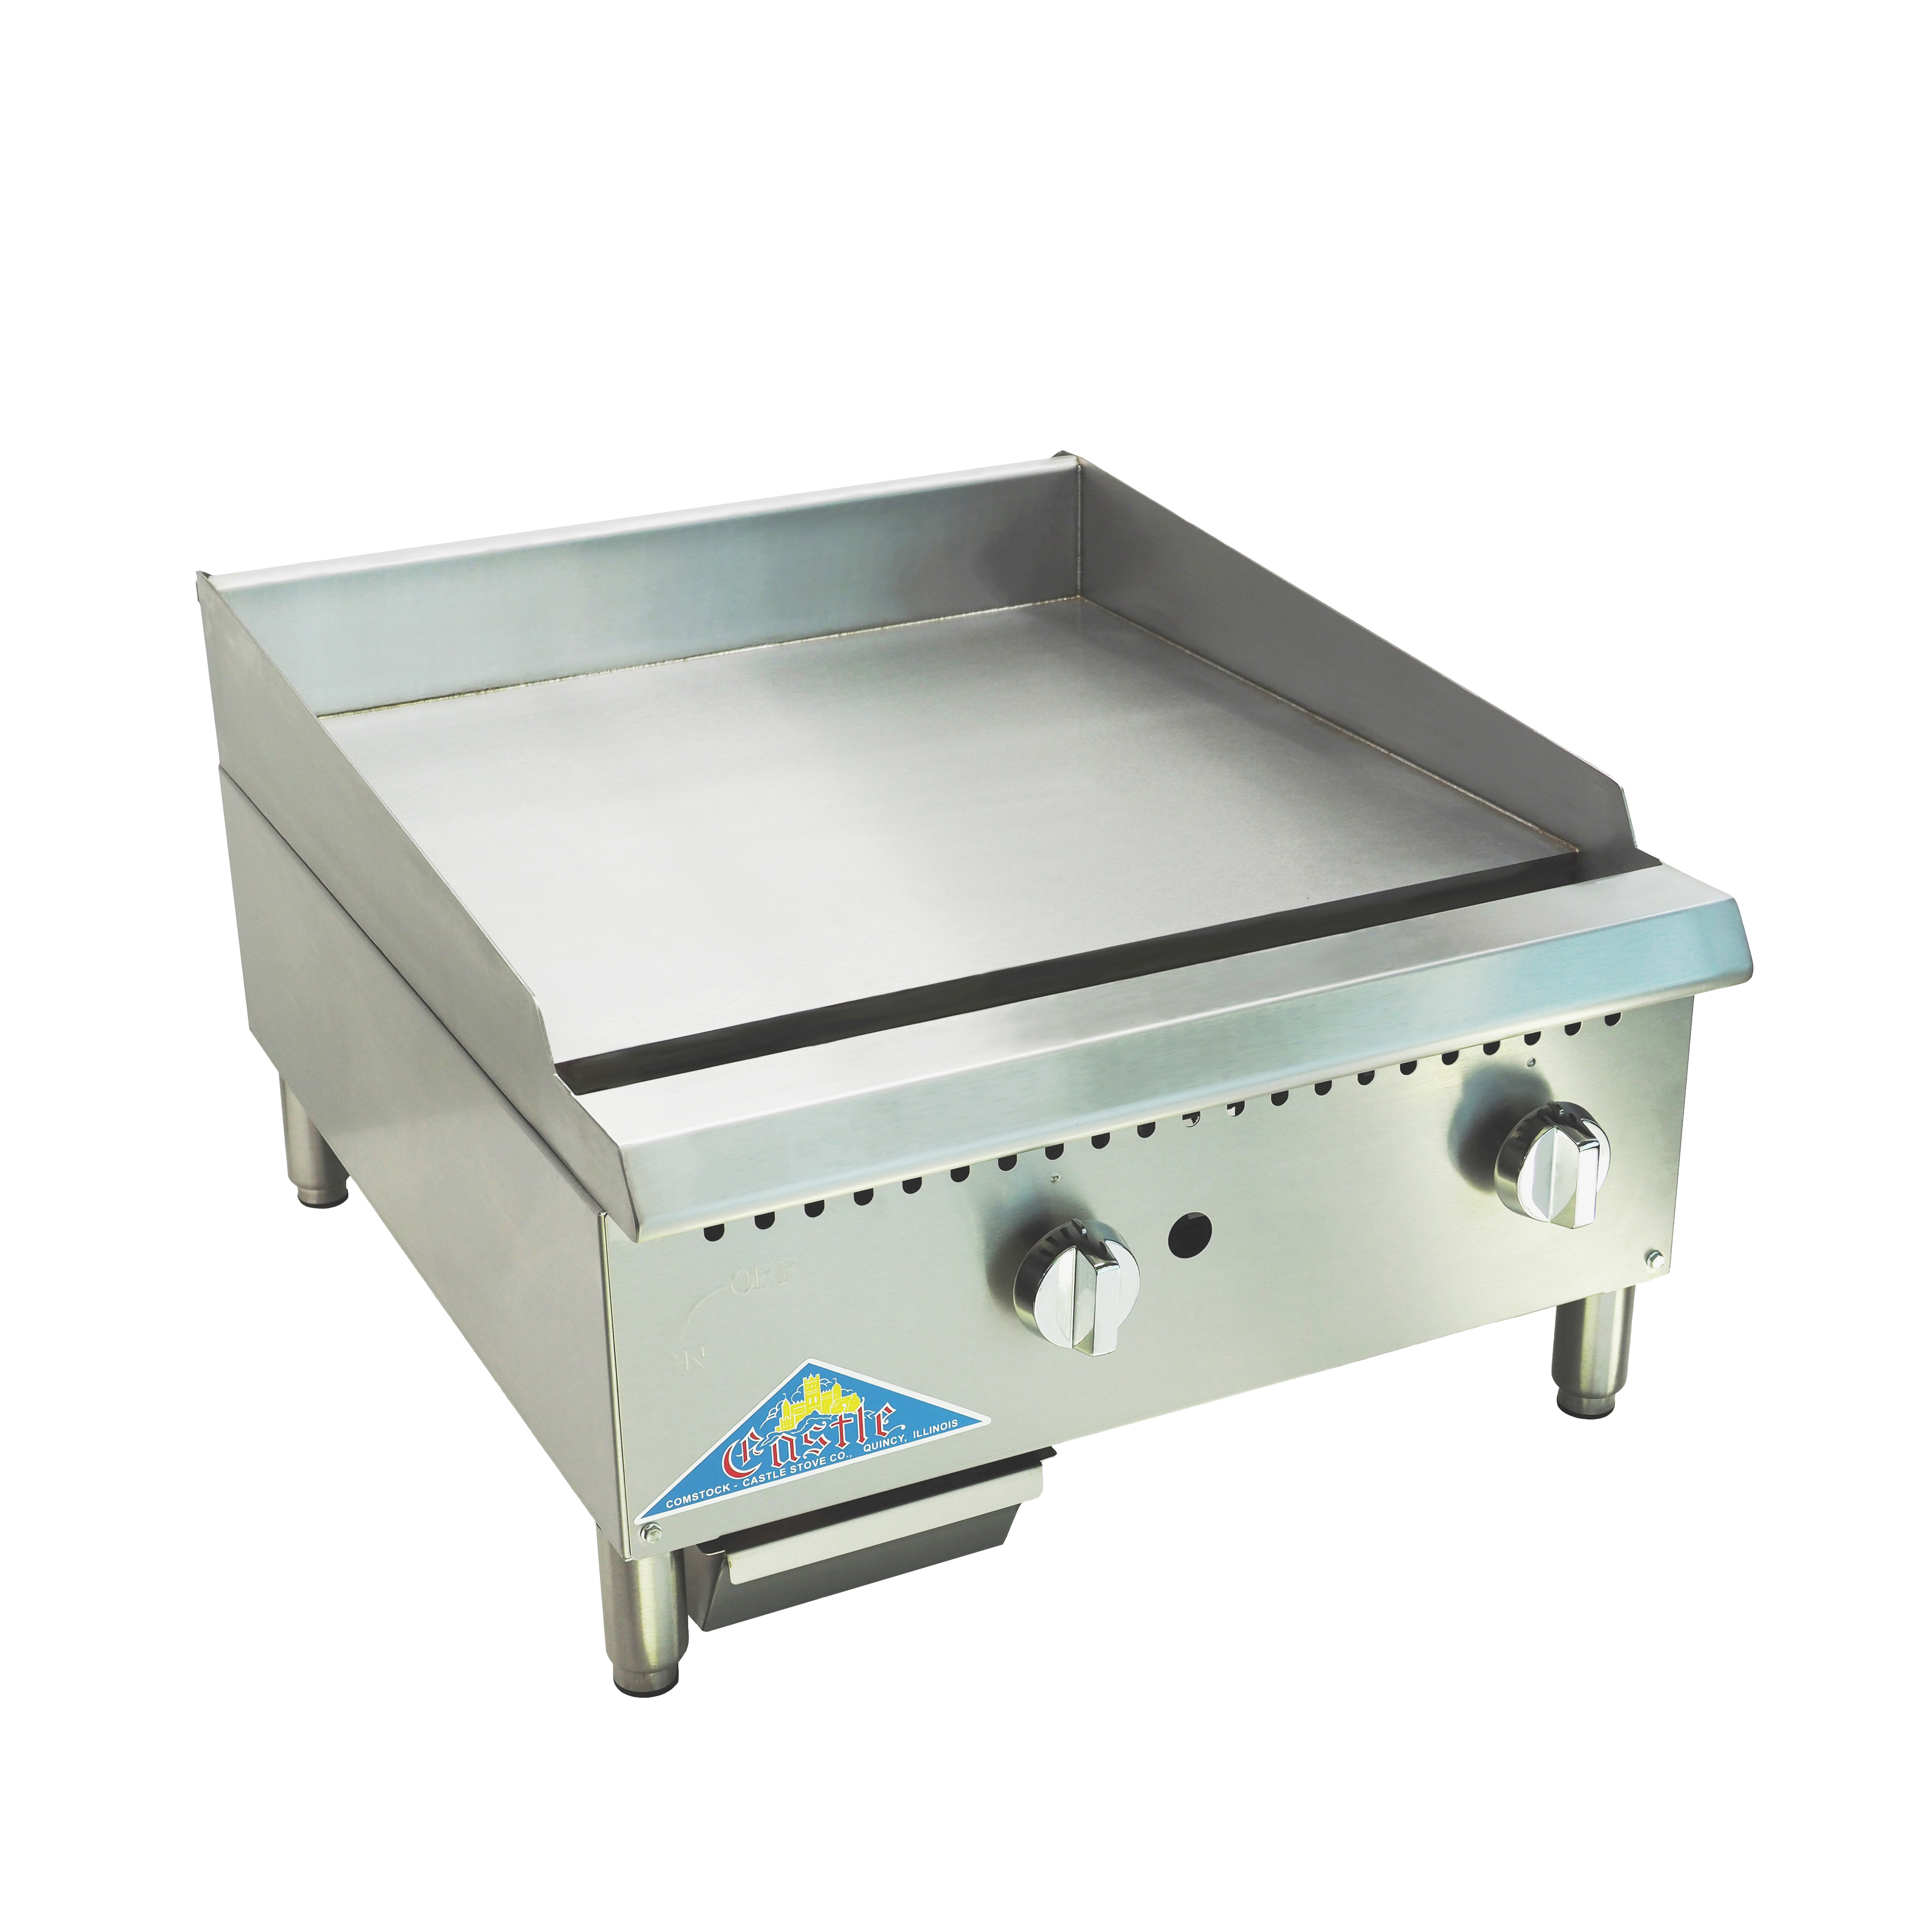 Comstock-Castle HG24T-1-C griddle, gas, countertop